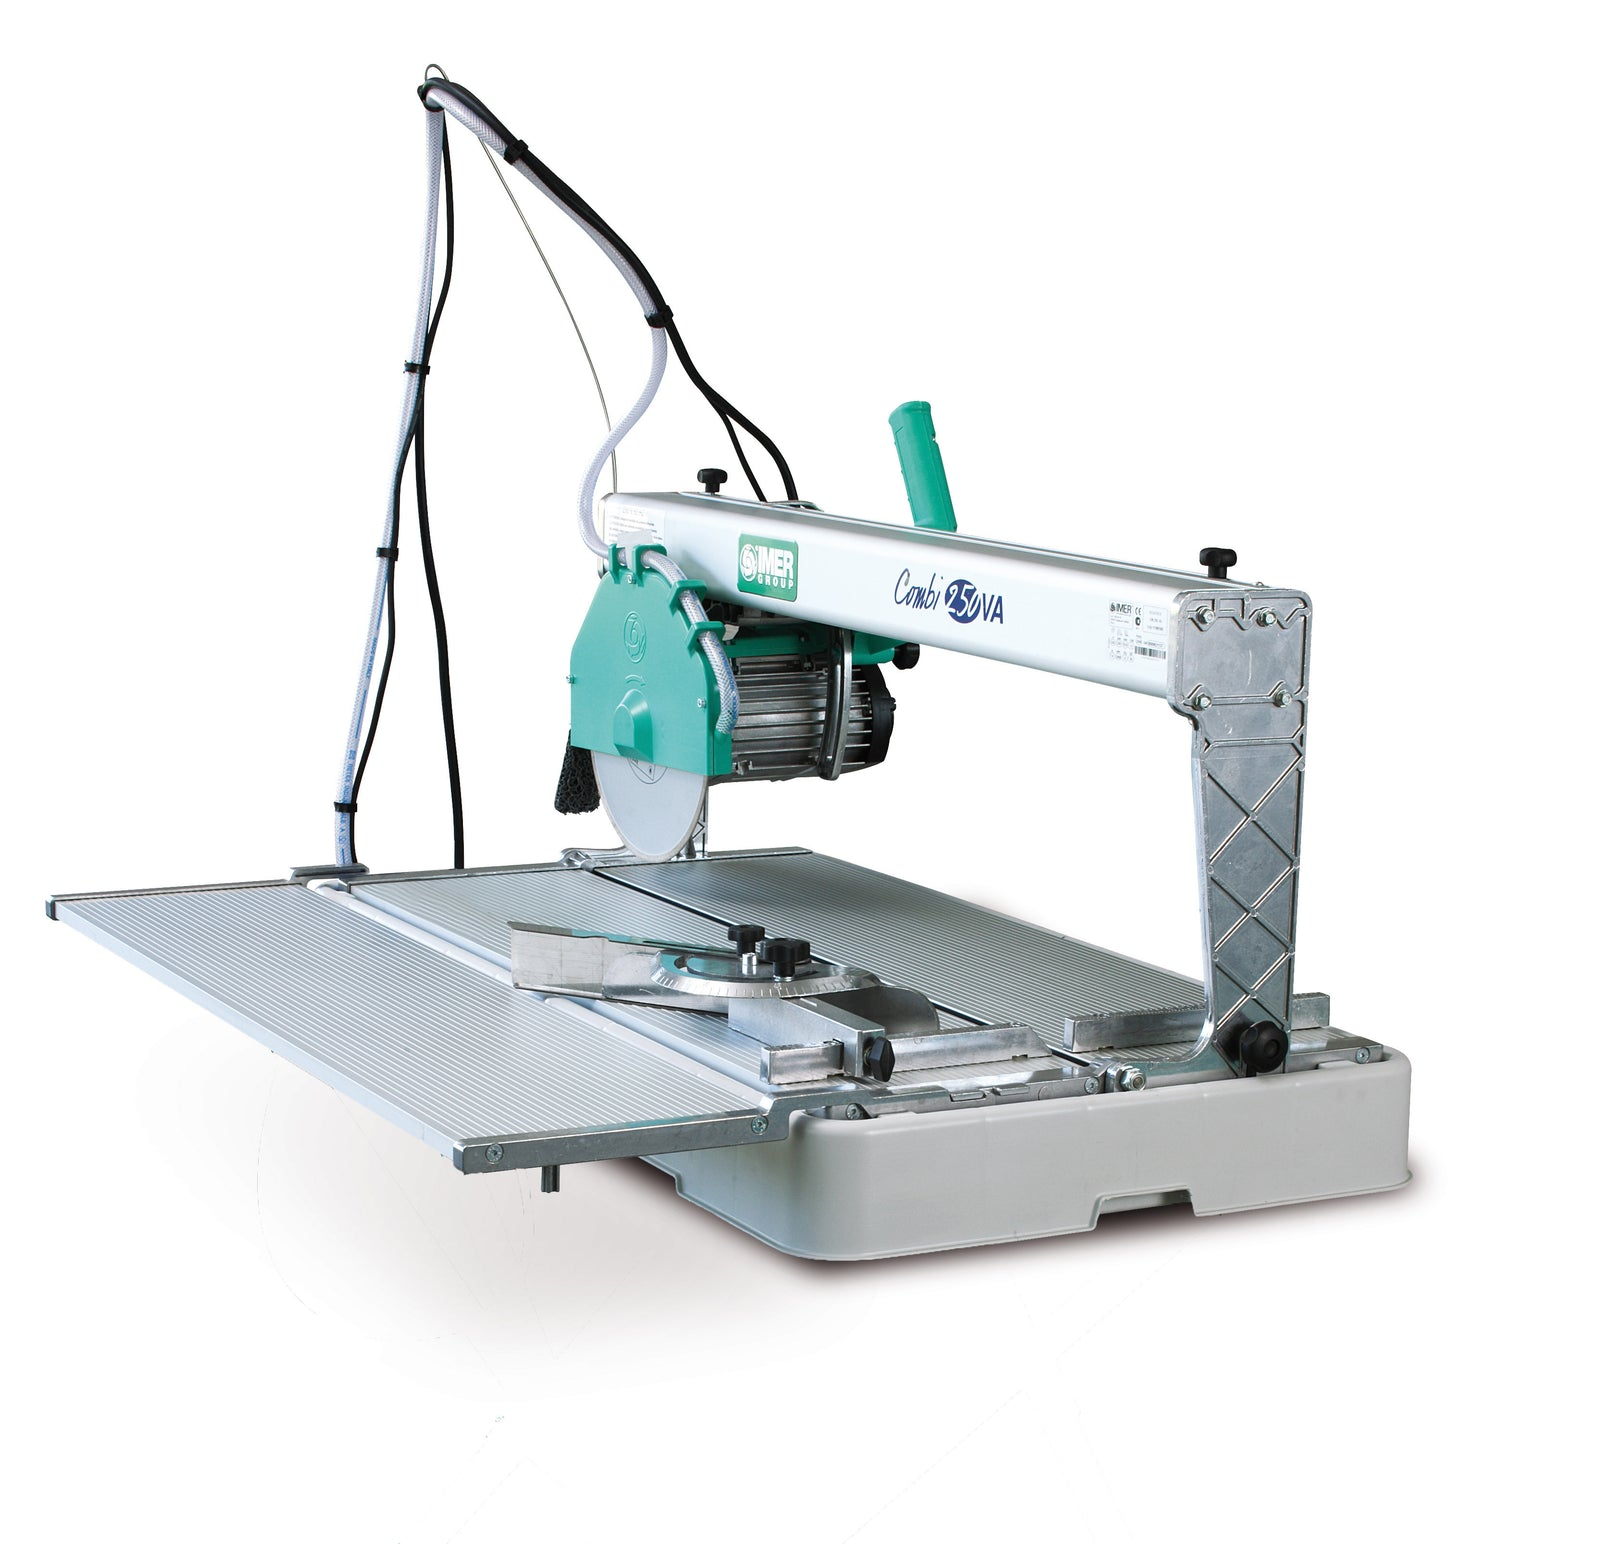 "IMER Combi 250 10"" precision lightweight tile and stone saw with side table"